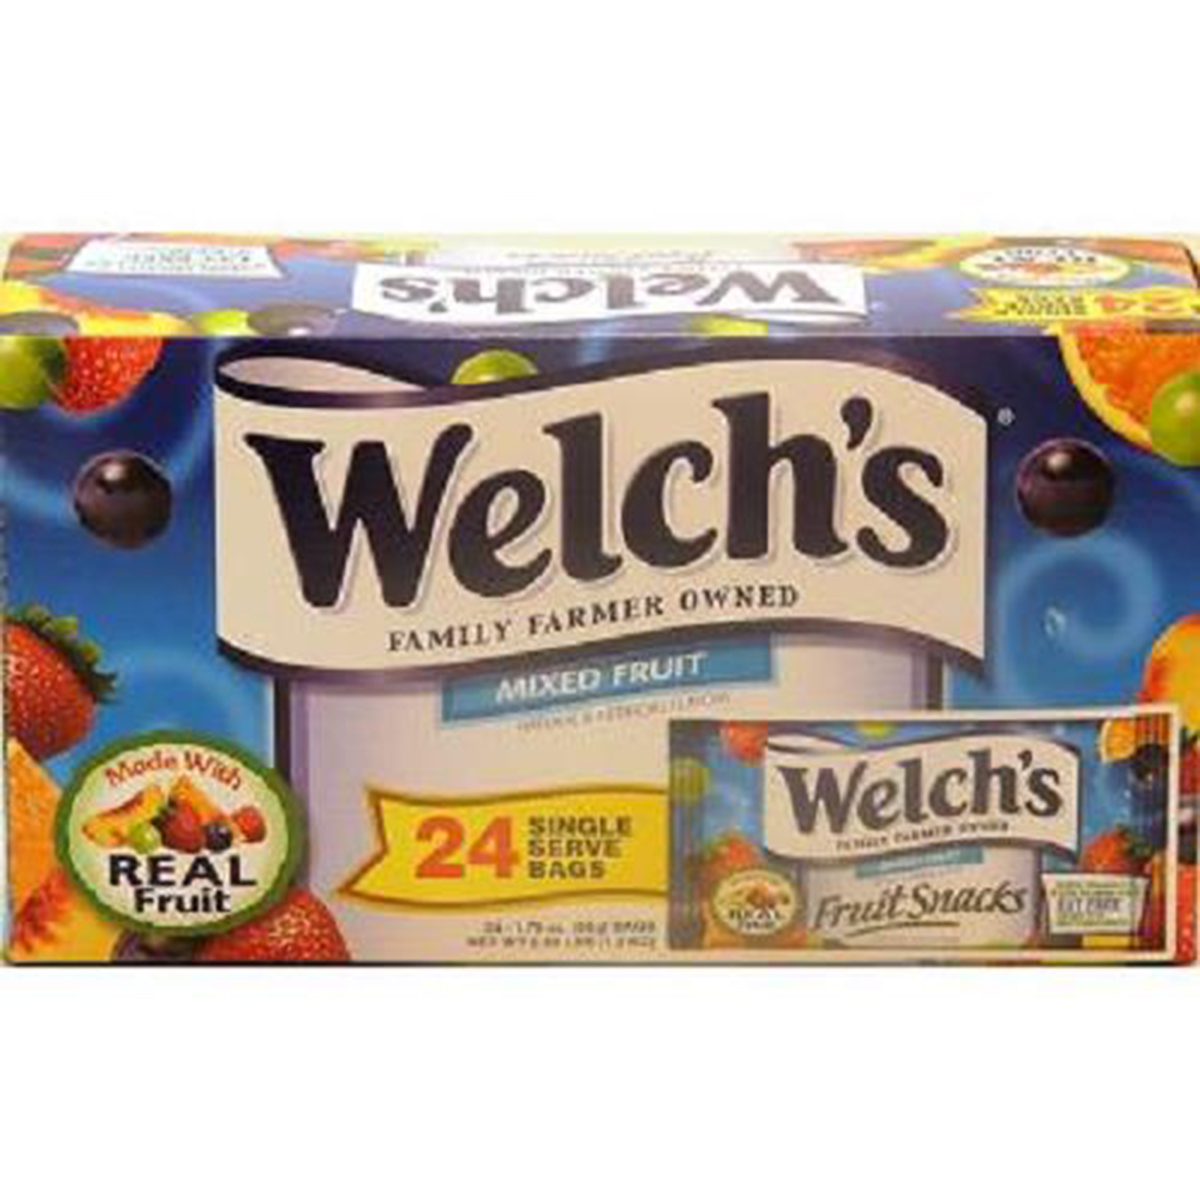 WELCHS FRUIT SNACK - MIXED FRUIT 1.75 oz Each ( 24 in a Pack )